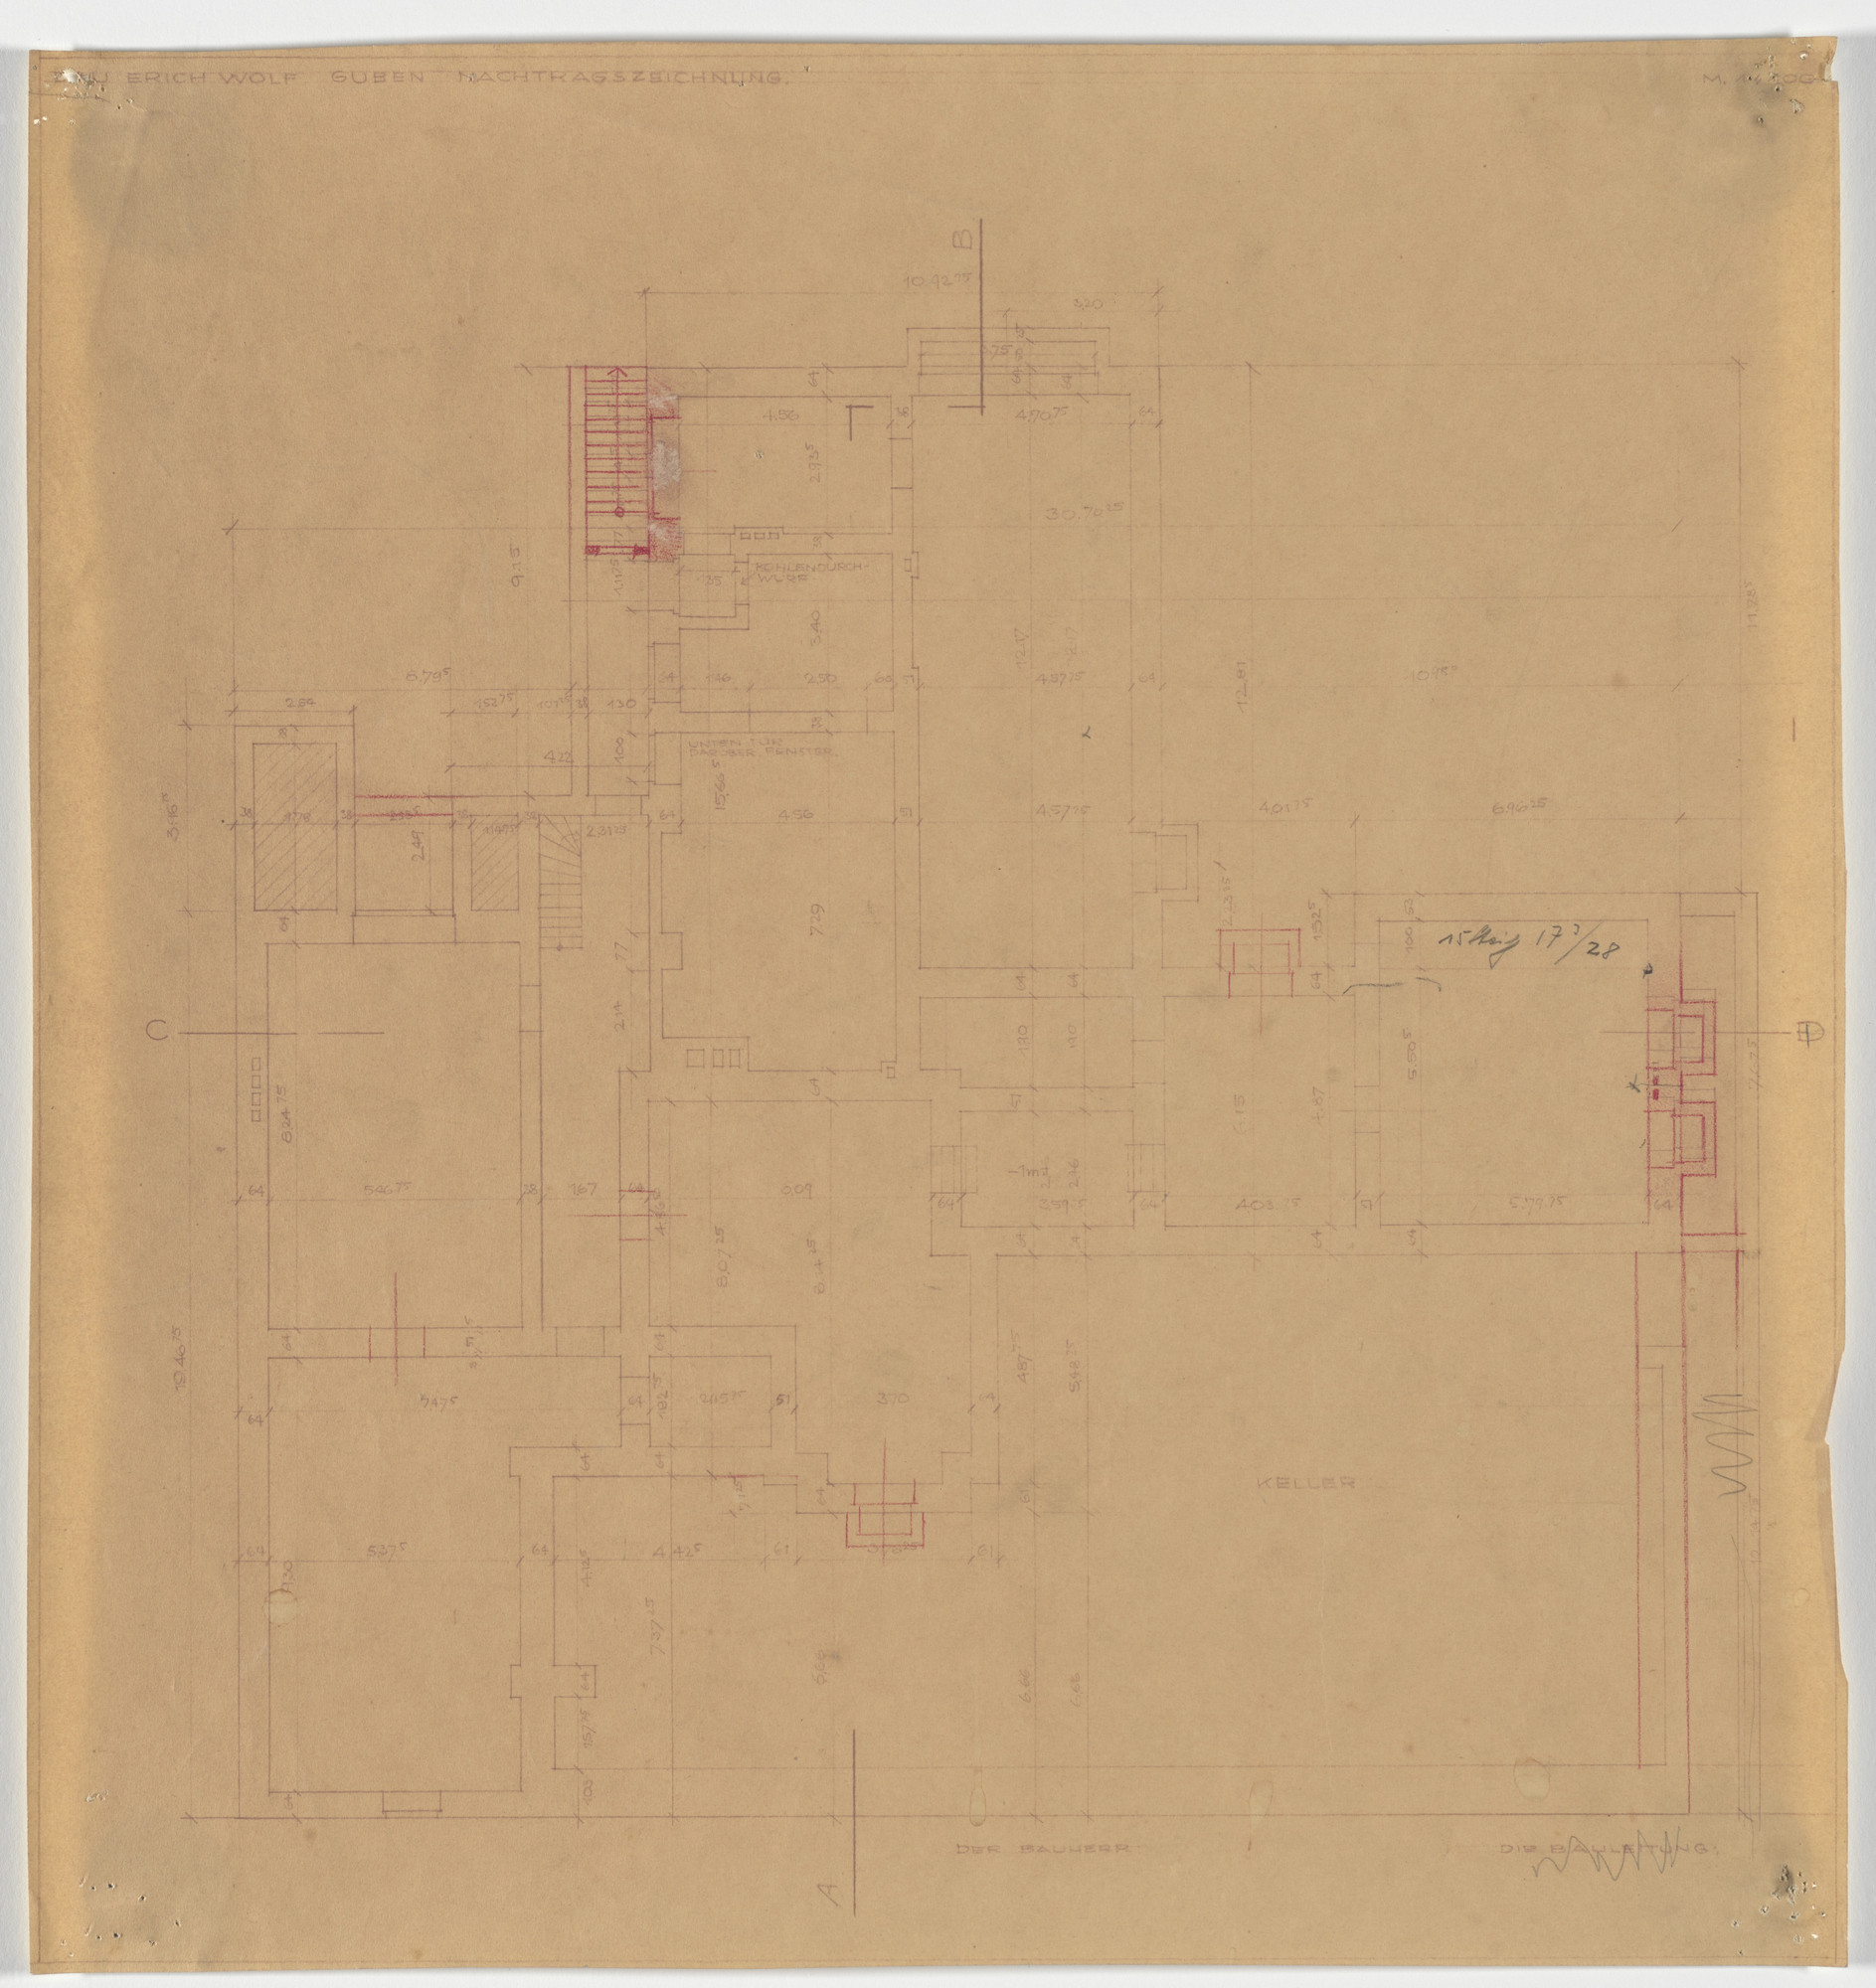 Ludwig Mies van der Rohe. Wolf House, Gubin, Poland (Basement plan [final version]). 1925-1927